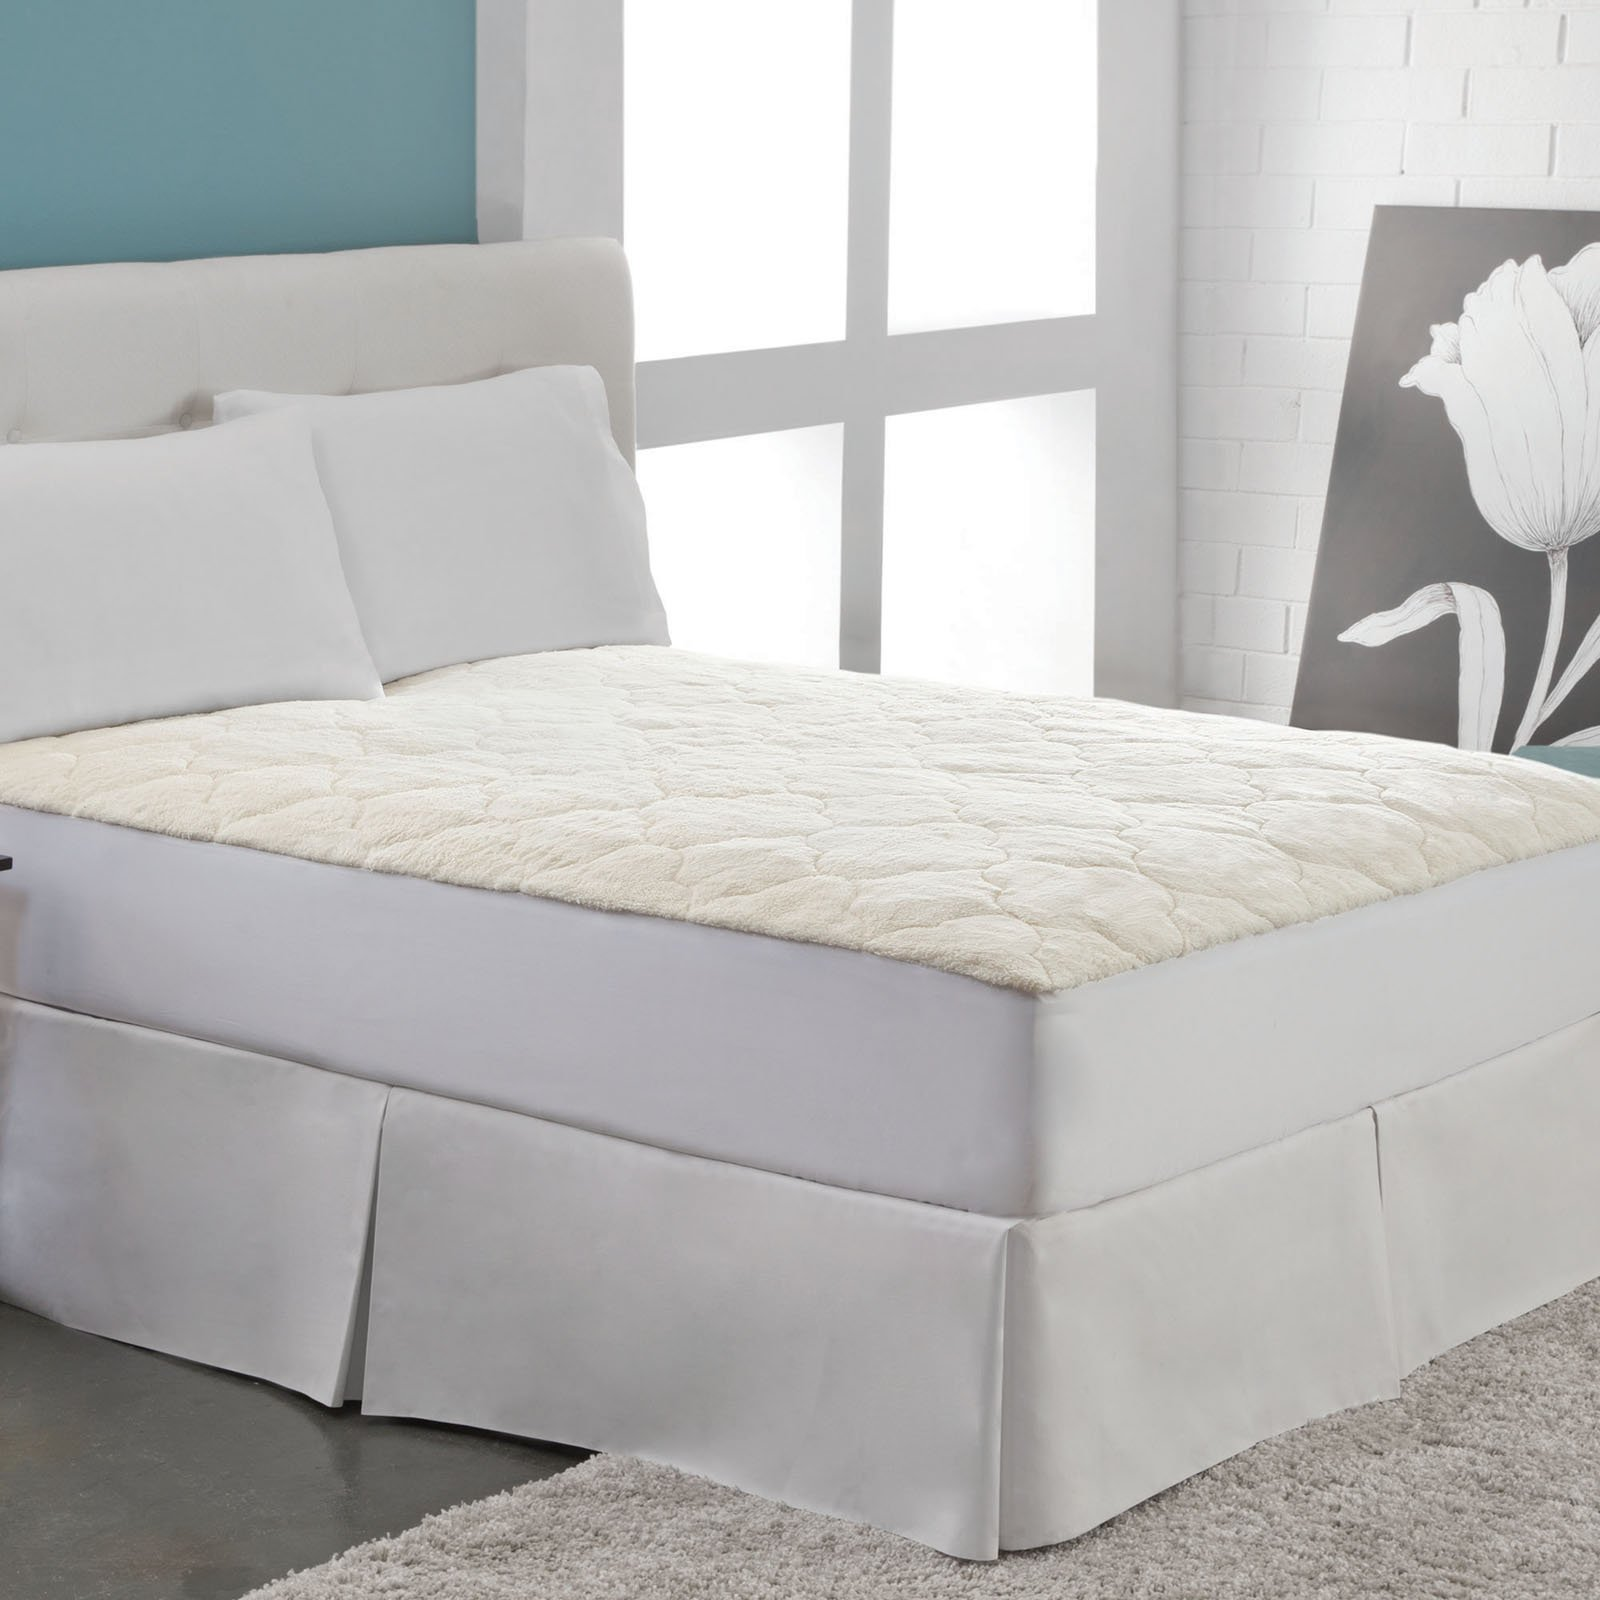 Cotton Fleece Mattress Pad by Perfect Fit Industries